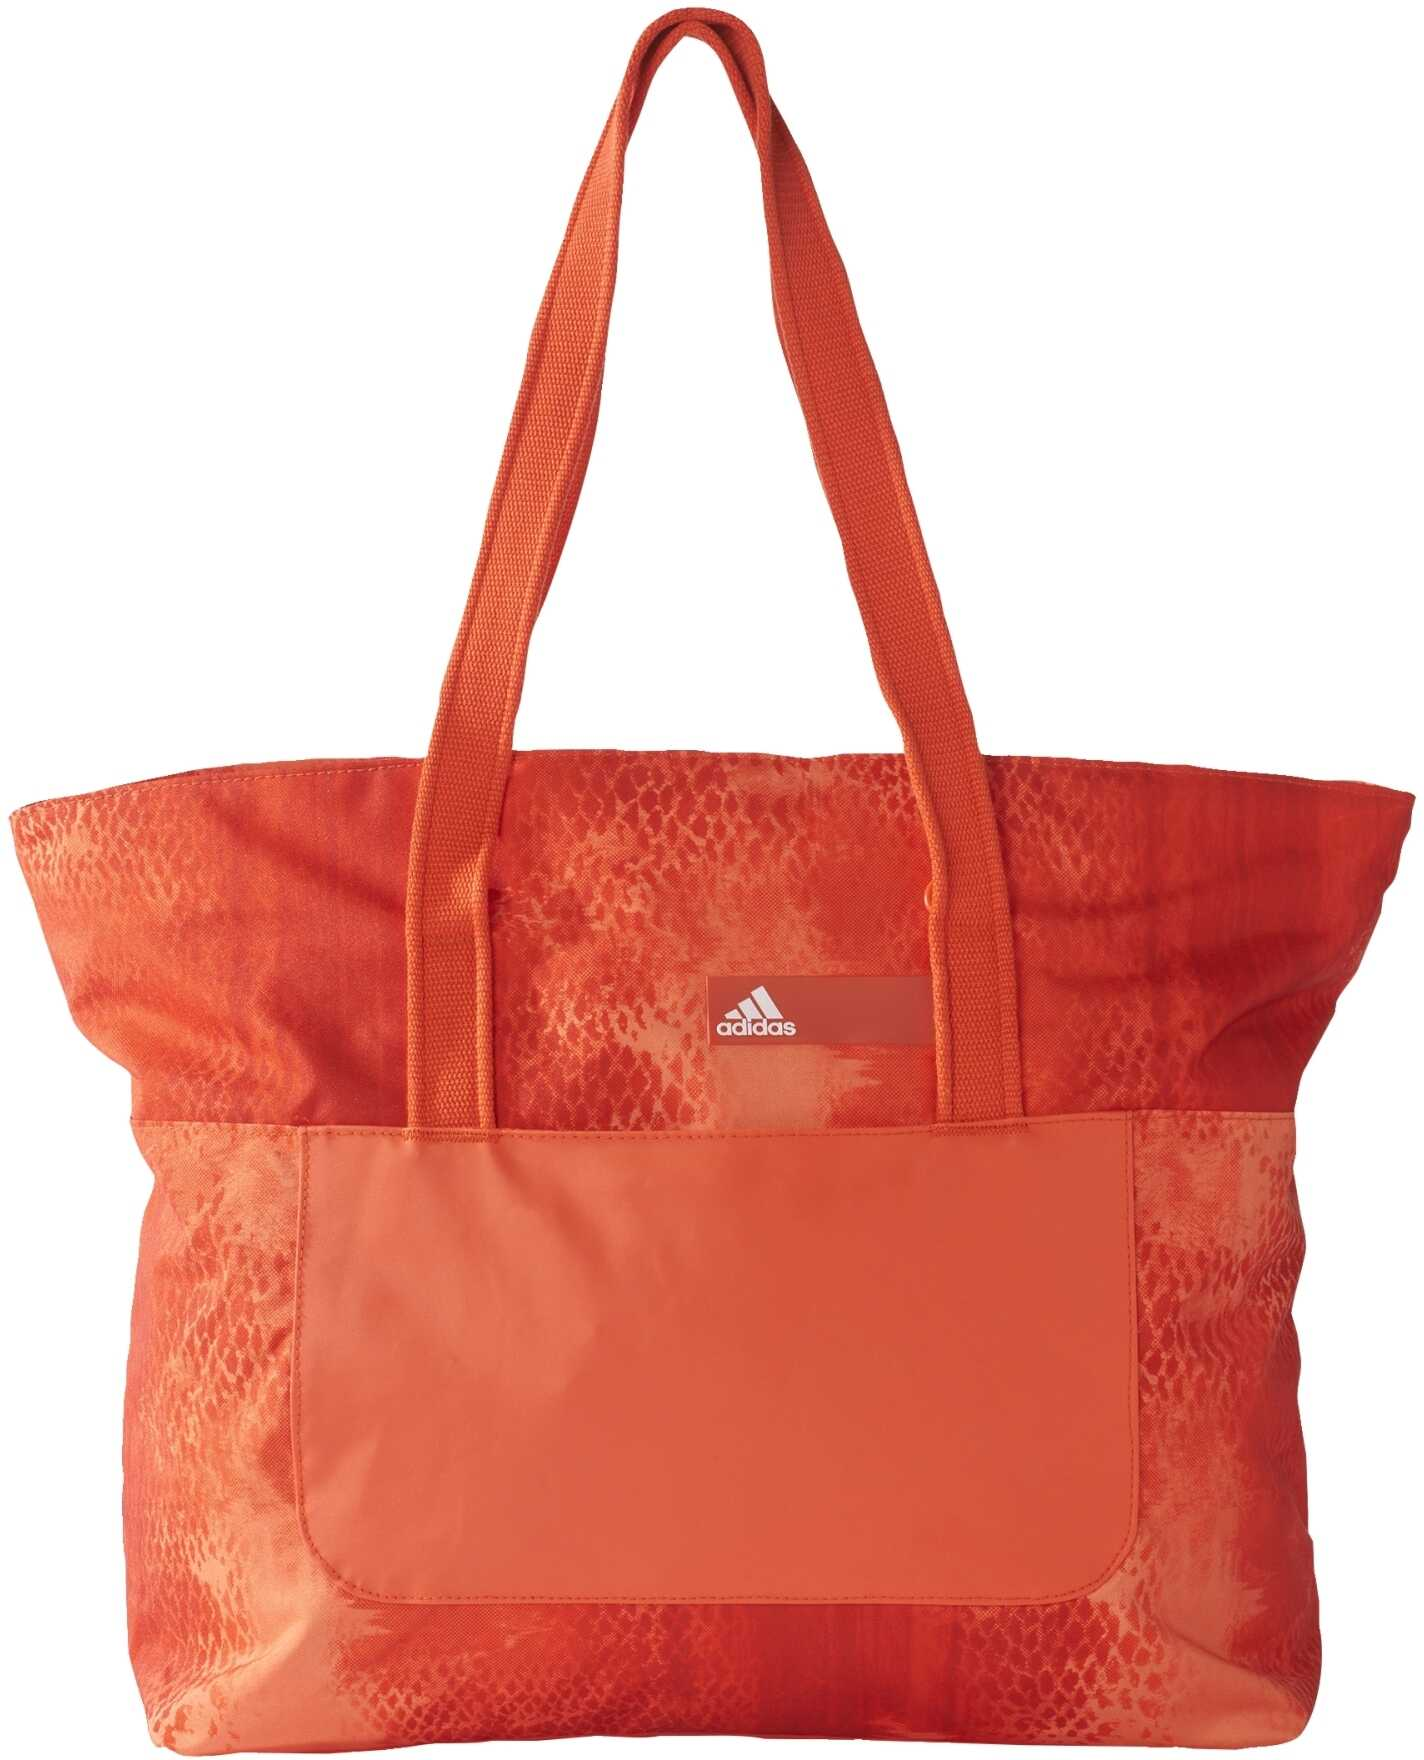 adidas BETTER TOTE GR2 GLOORA/SCARLE/WHITE